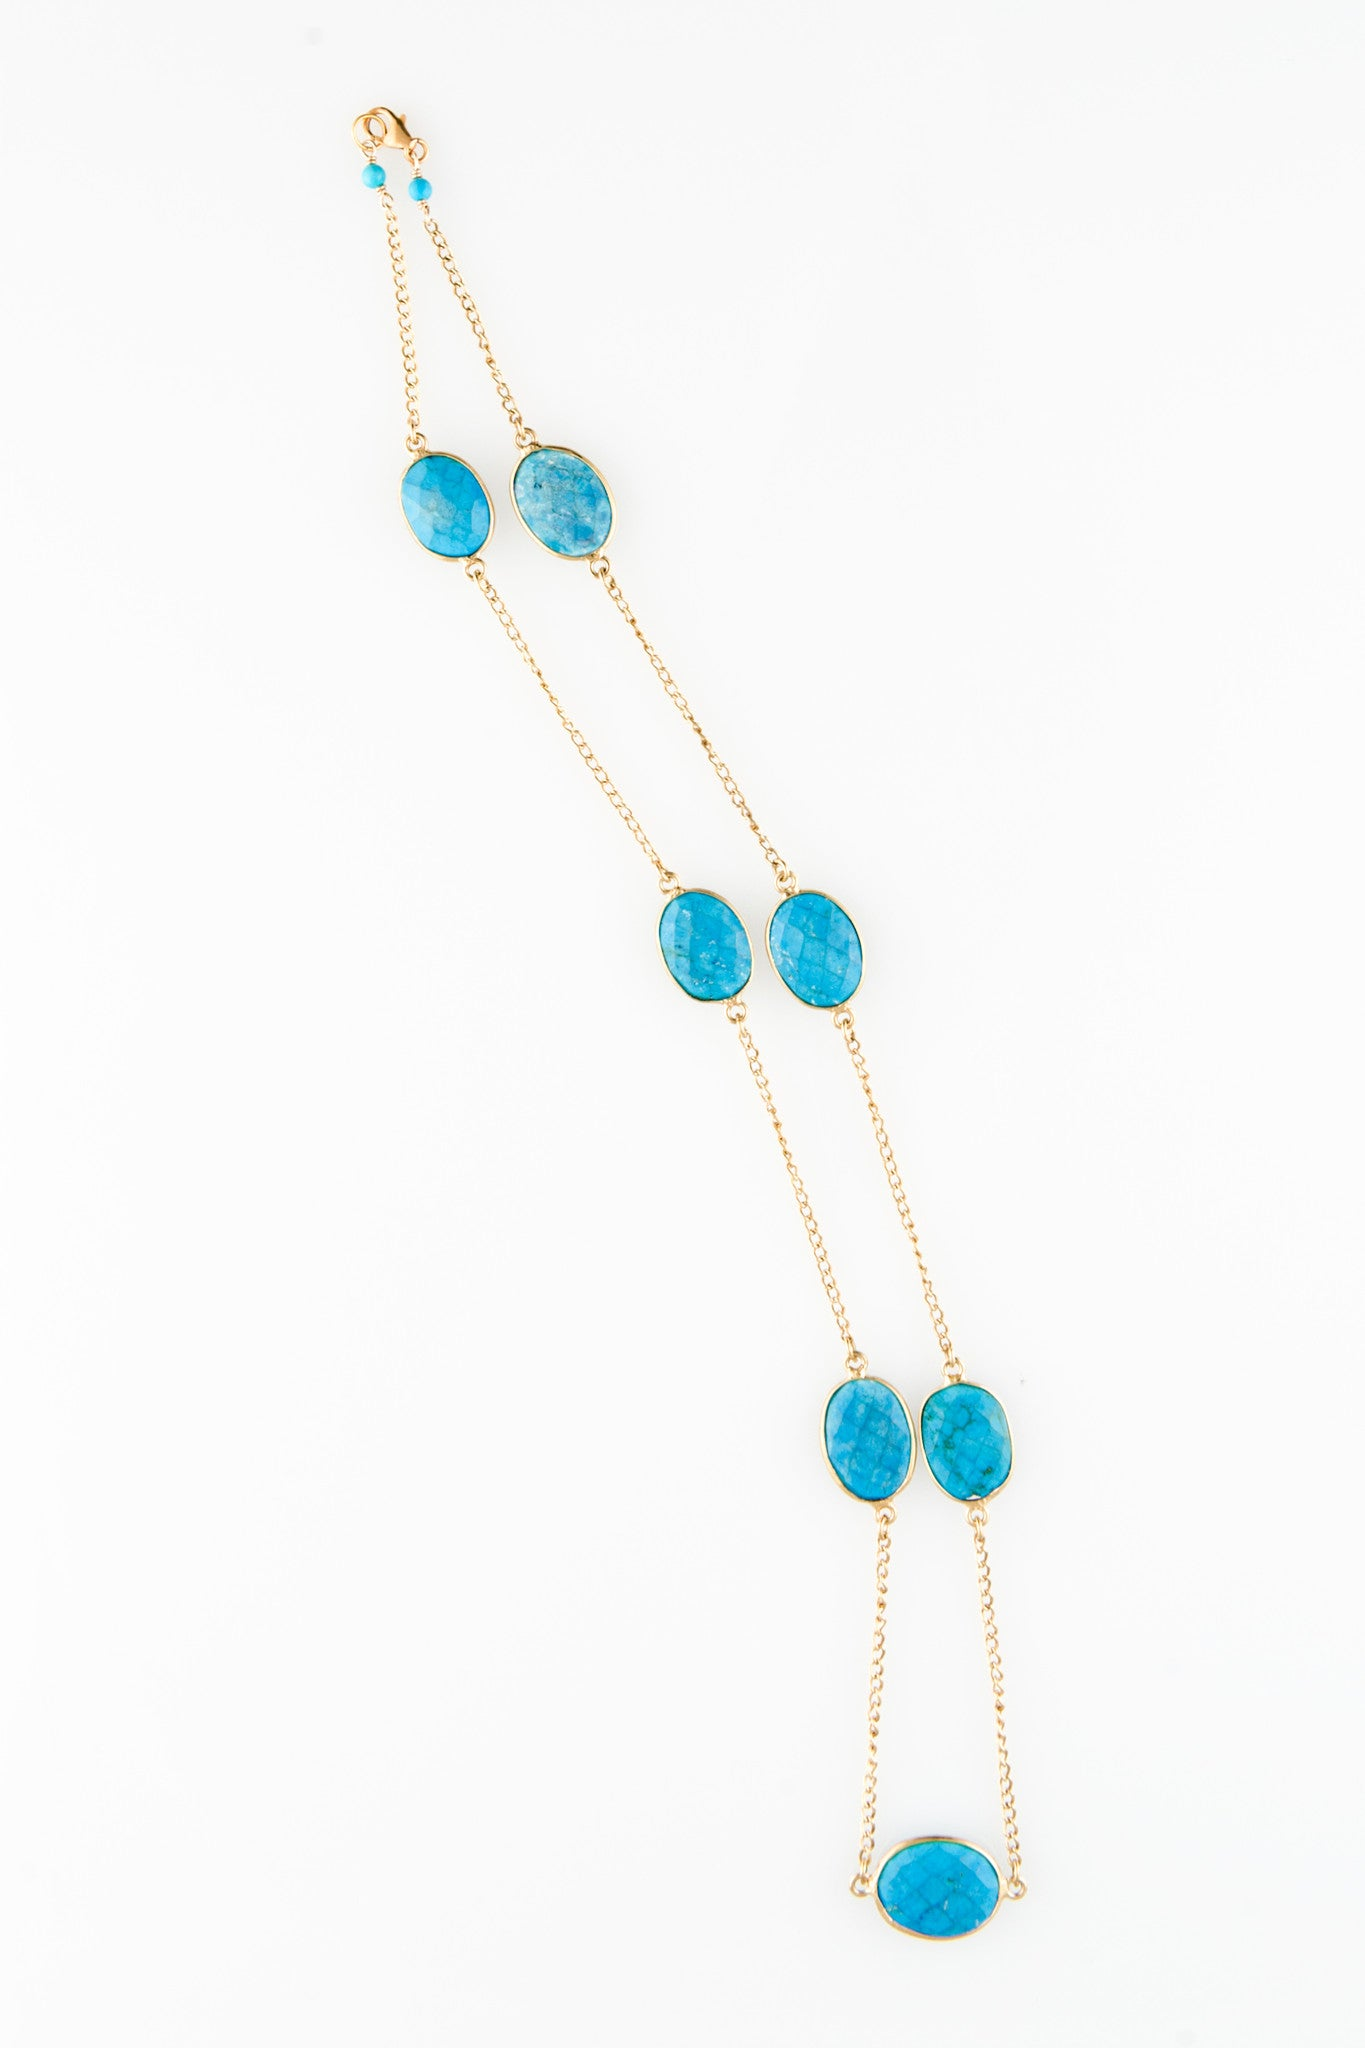 Turquoise Cabachon Chain - One of a Kind Gemstone necklace by Sage - The Sage Lifestyle